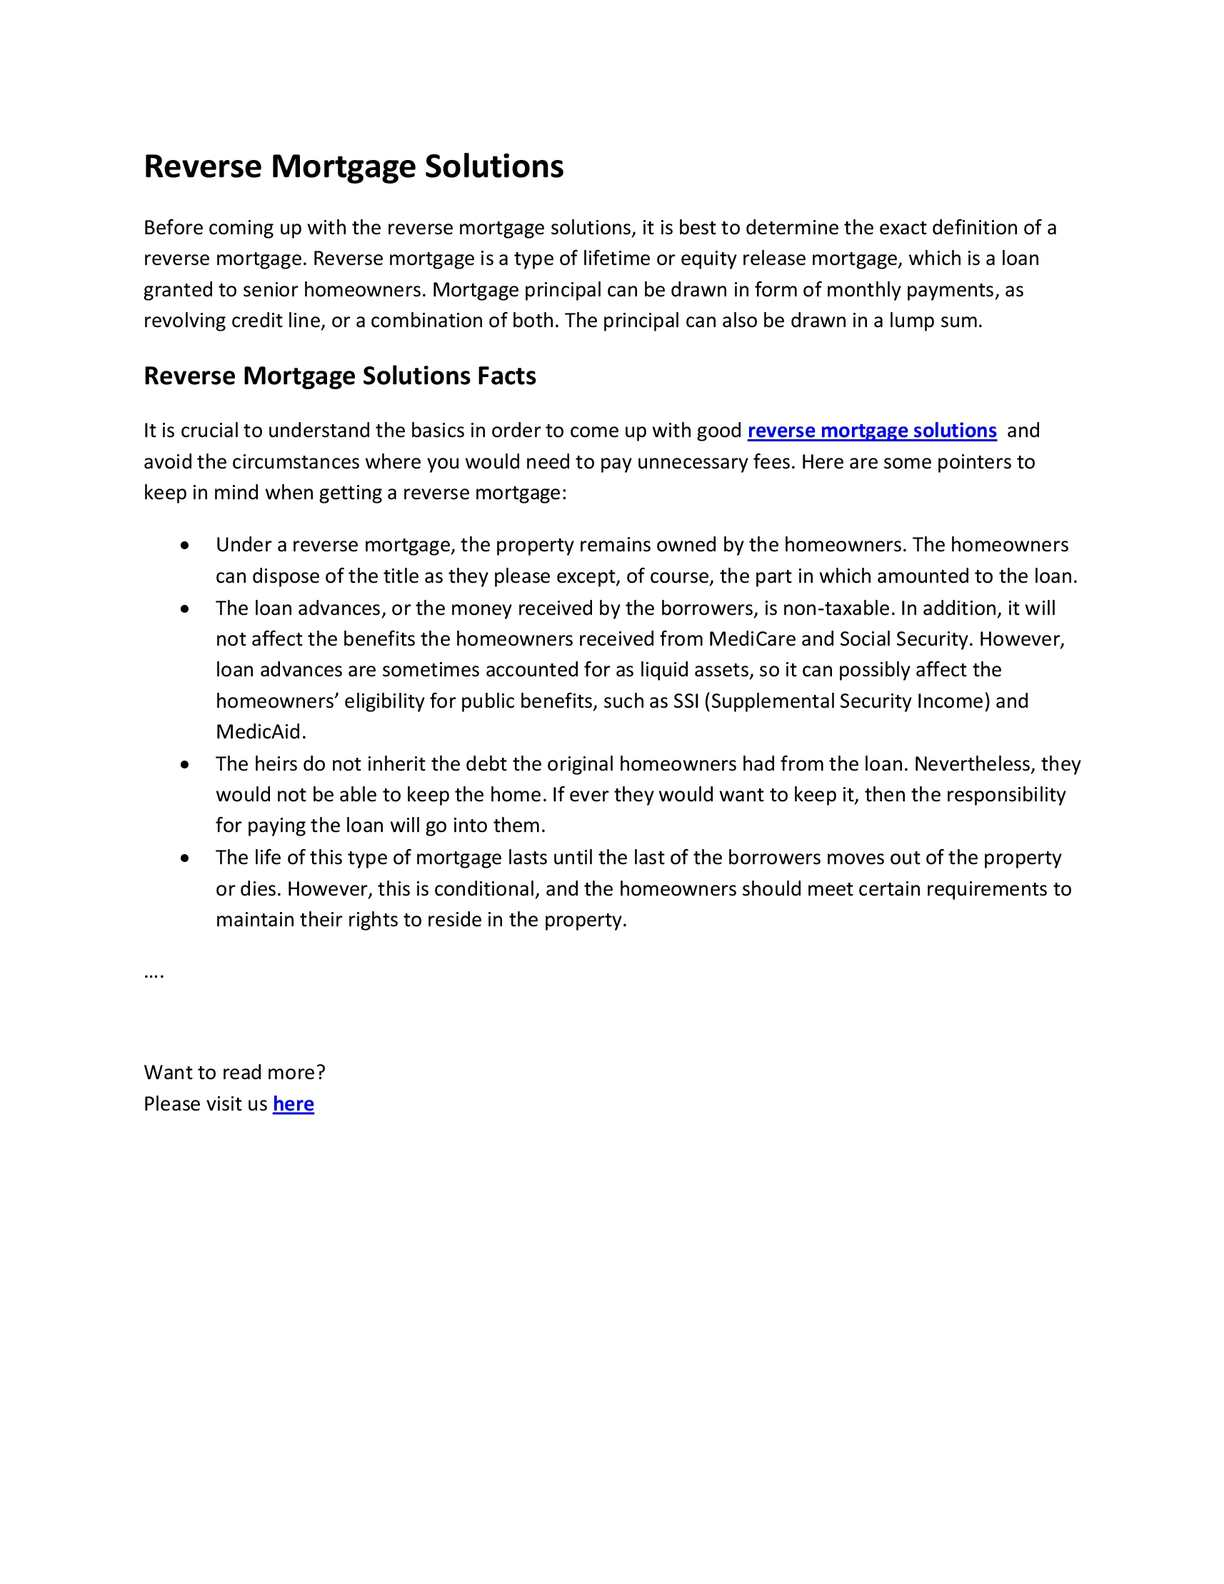 calaméo - reverse mortgage solutions